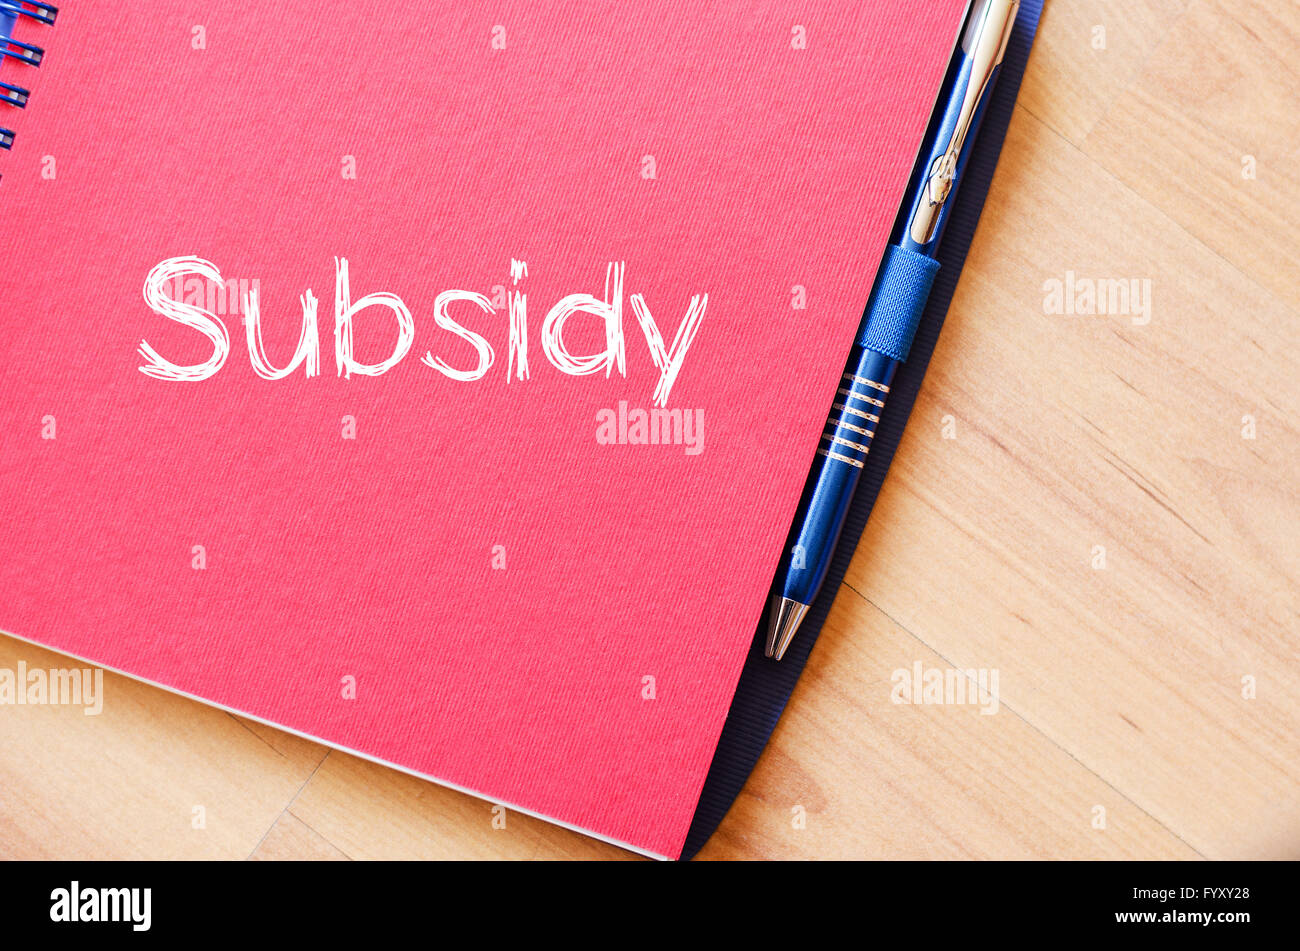 Subsidy write on notebook - Stock Image